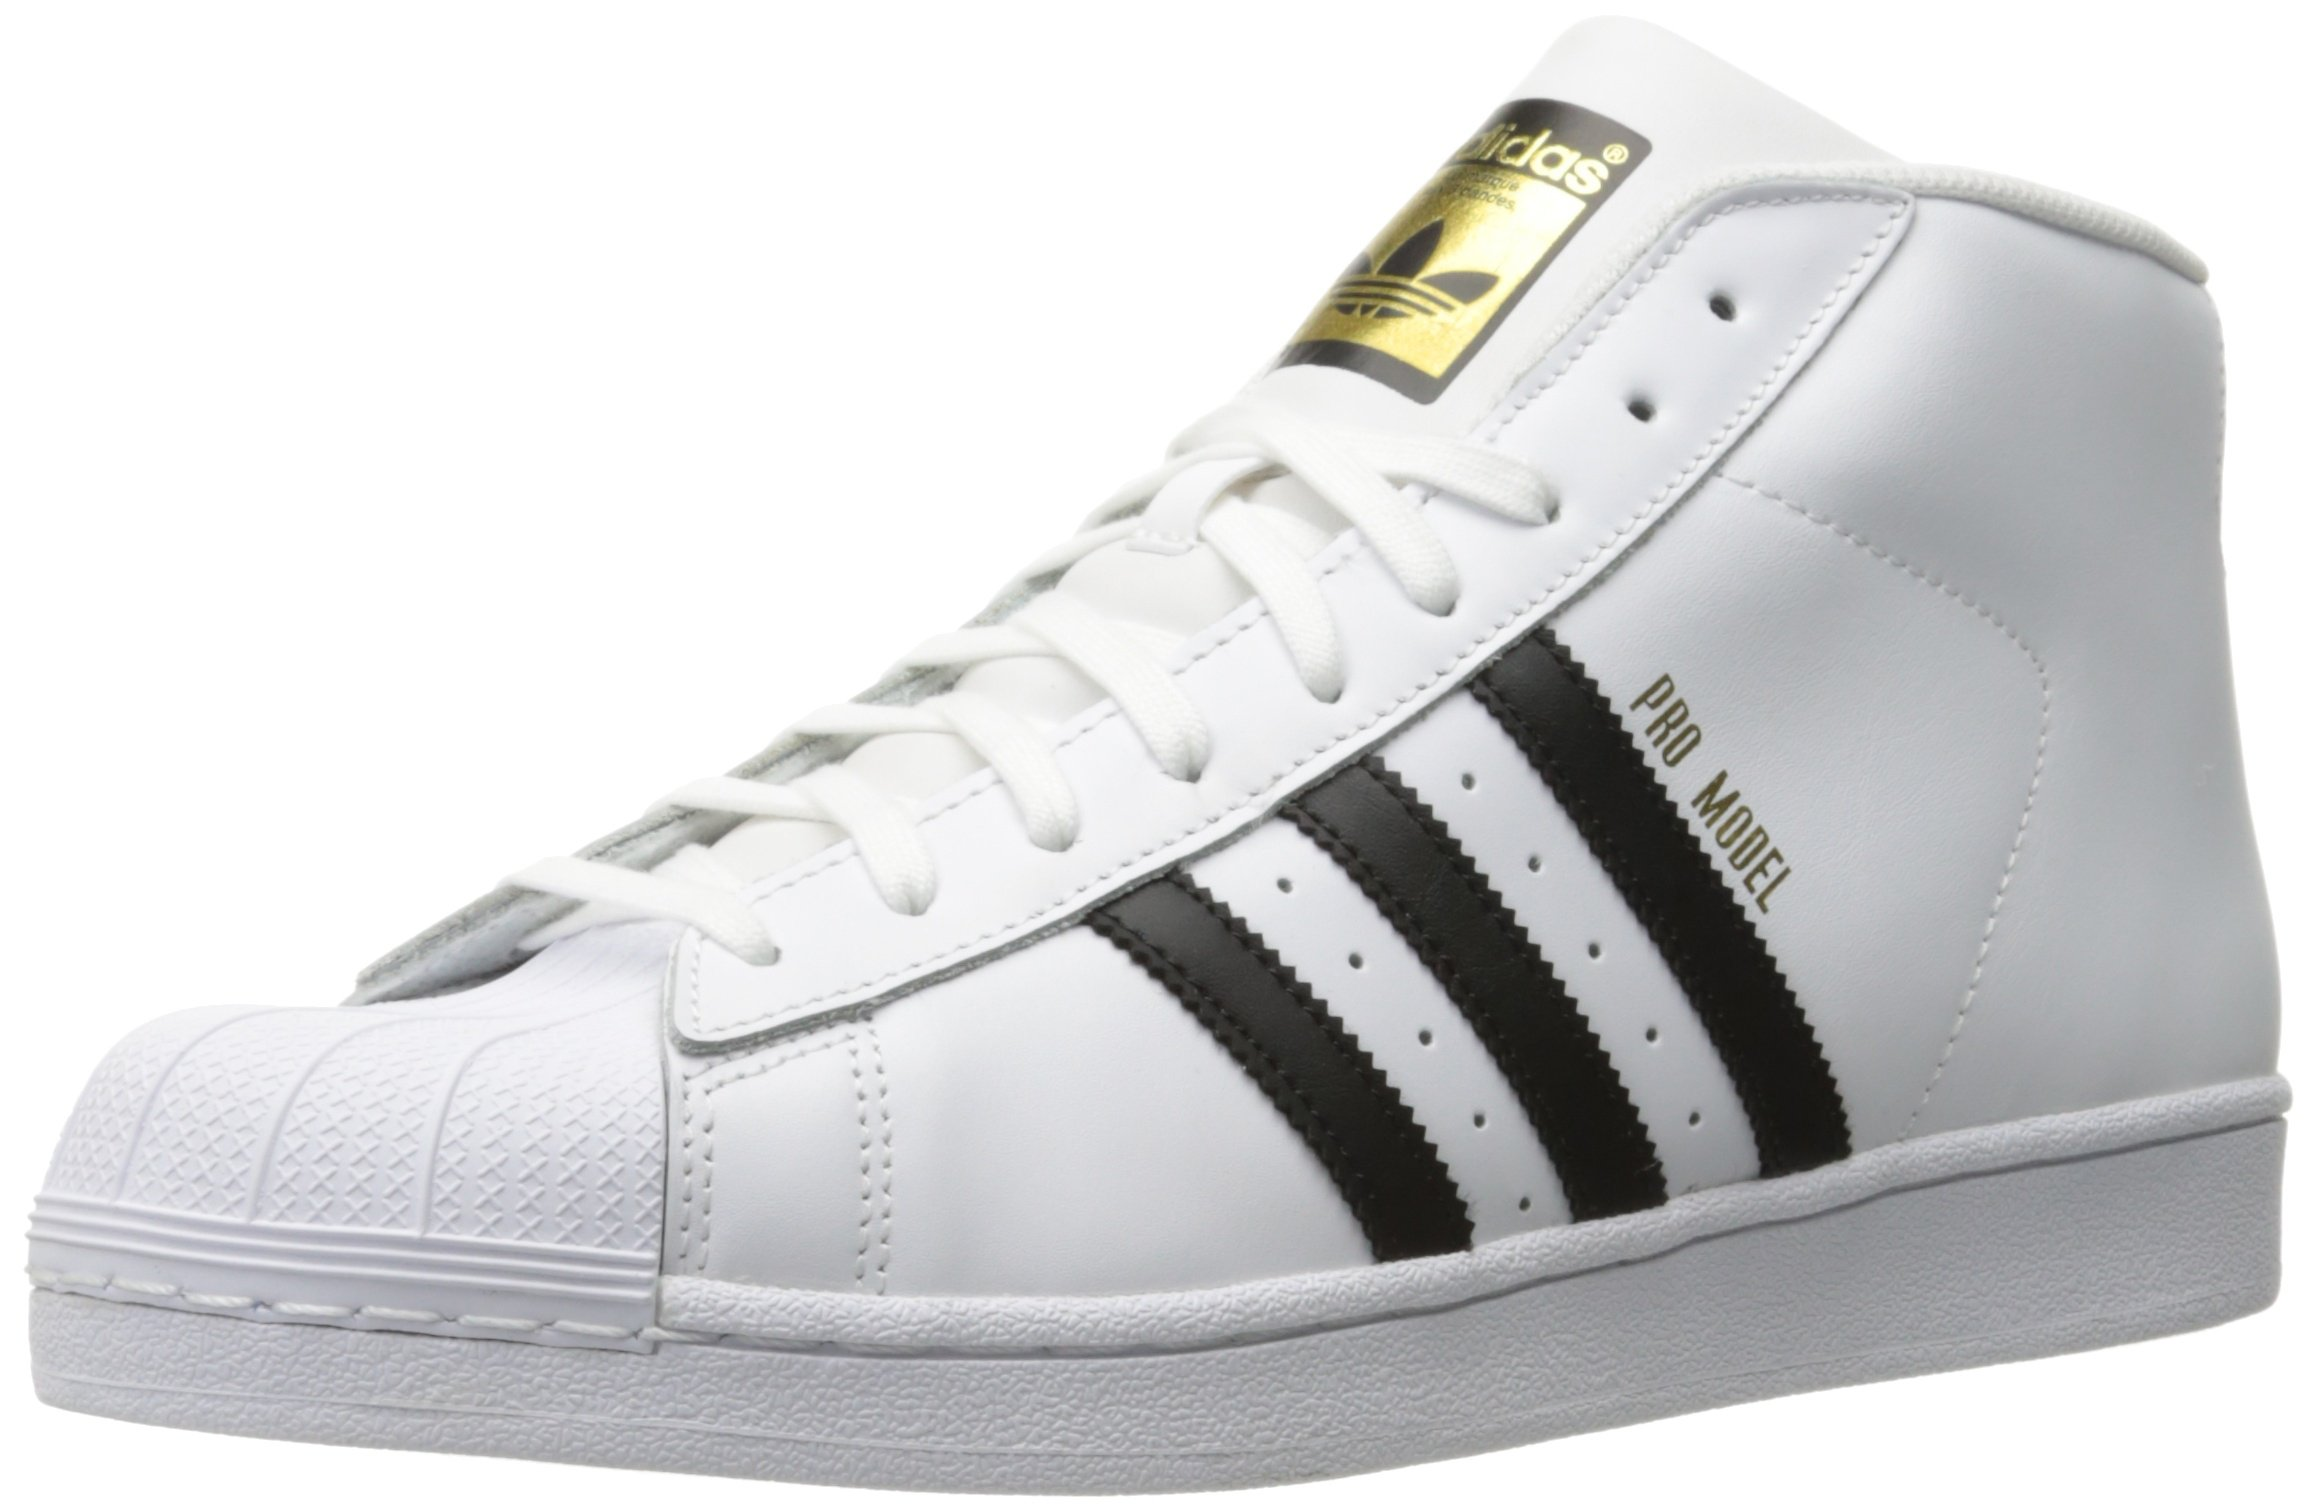 newest 0a2d1 711b7 Galleon - Adidas Originals Men s Pro Model-m Fashion Sneaker, White Black  White, 4 M US